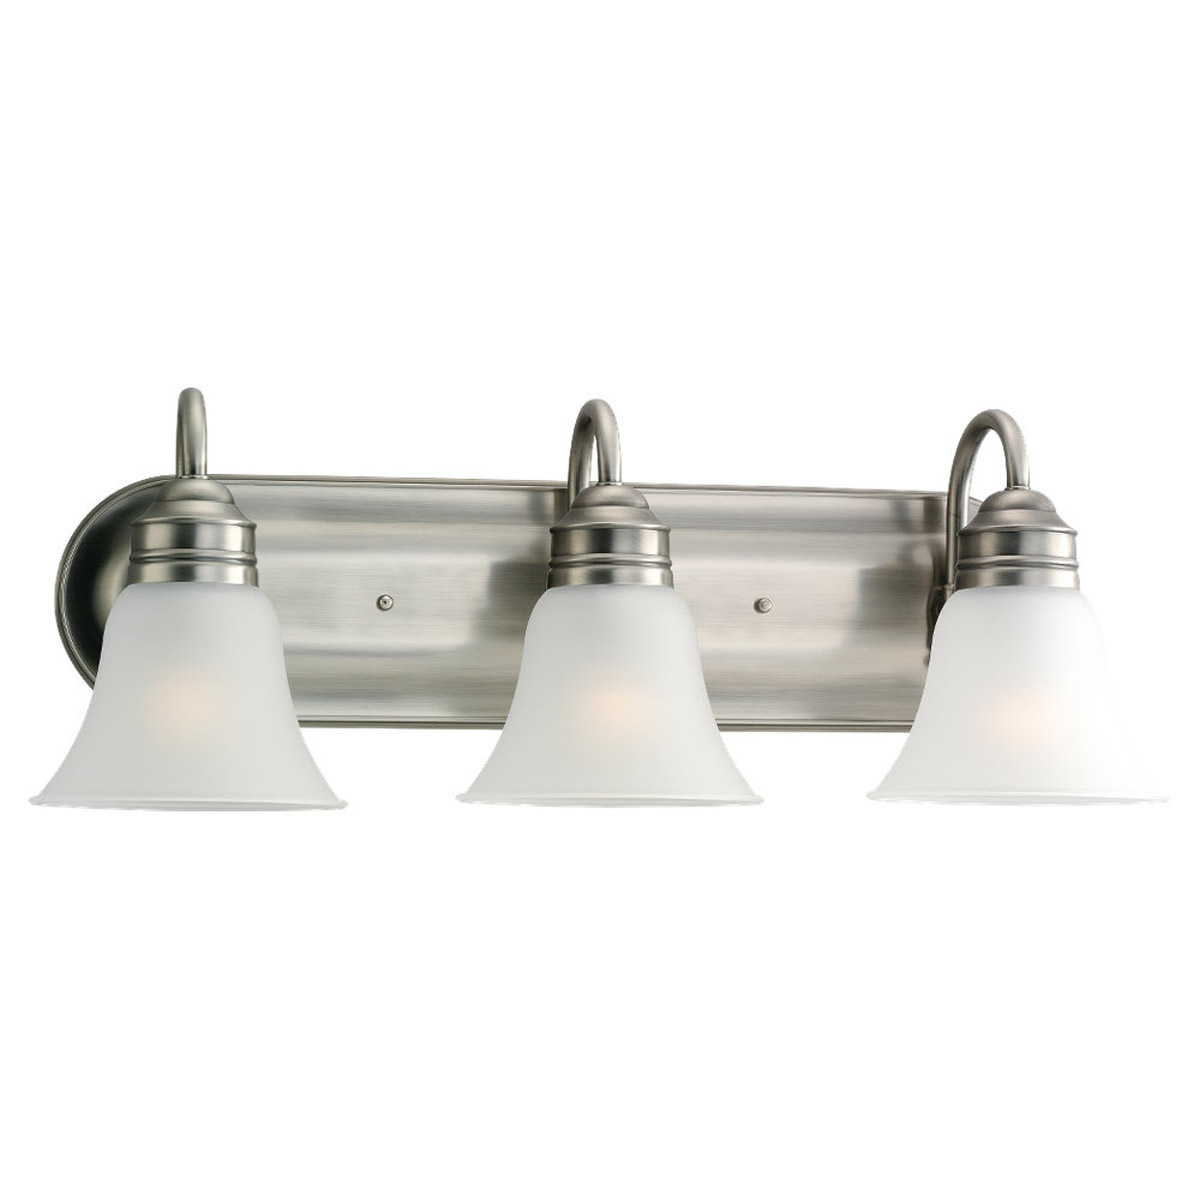 Sea Gull Lighting Gladstone 3 Light Bath Vanity in Antique Brushed Nickel 49852BLE-965 photo